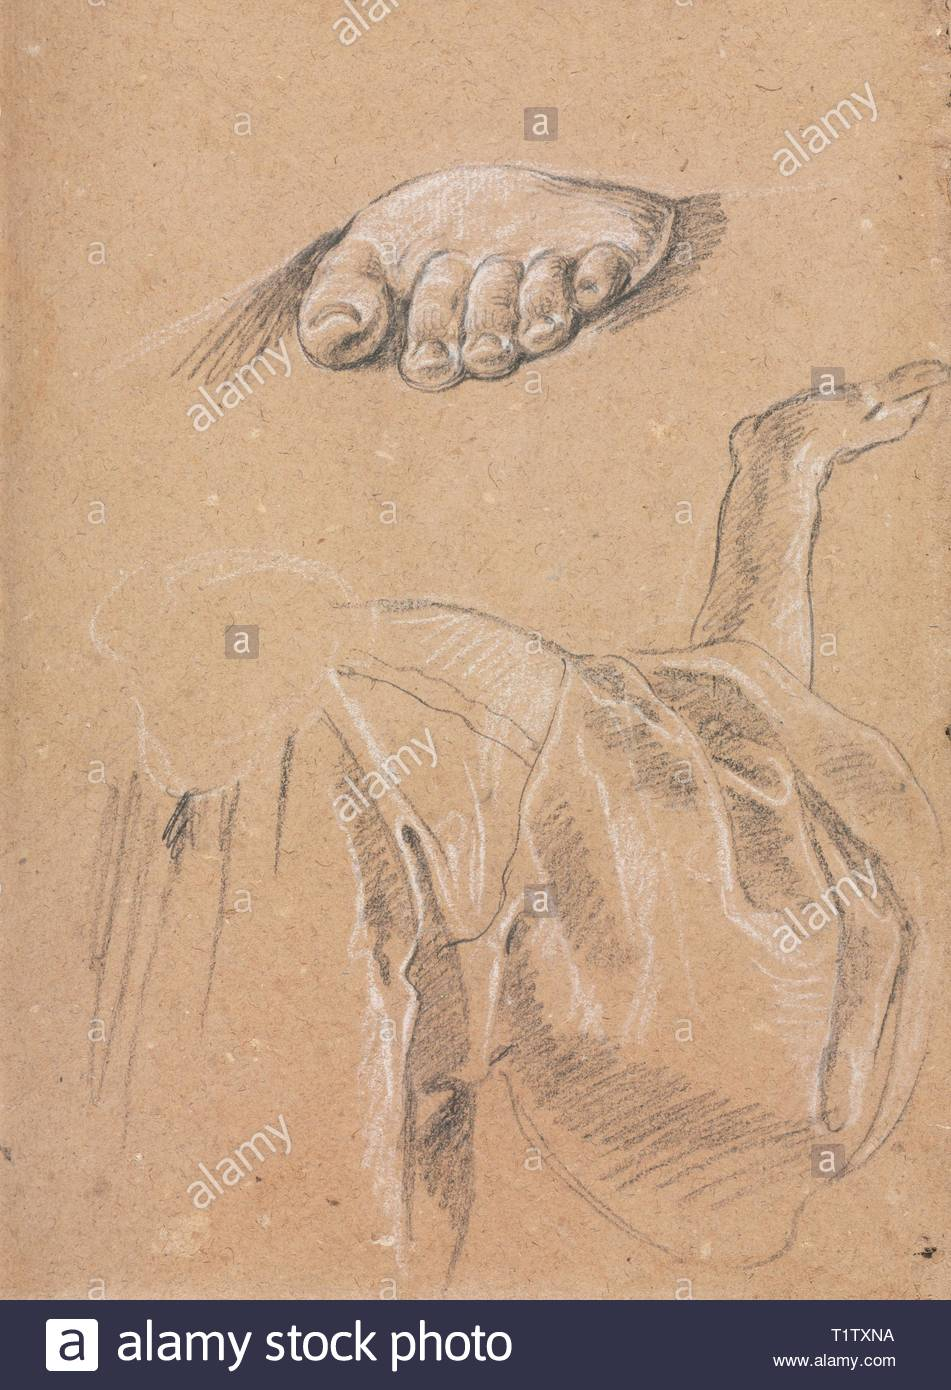 Verona Sketchbook: Study of a left foot and drapery study with right arm (page 79), 1760. Francesco Lorenzi (Italian, 1723-1787). Black chalk with white heightening ; sheet: 32 x 23 cm (12 5/8 x 9 1/16 in.). - Stock Image